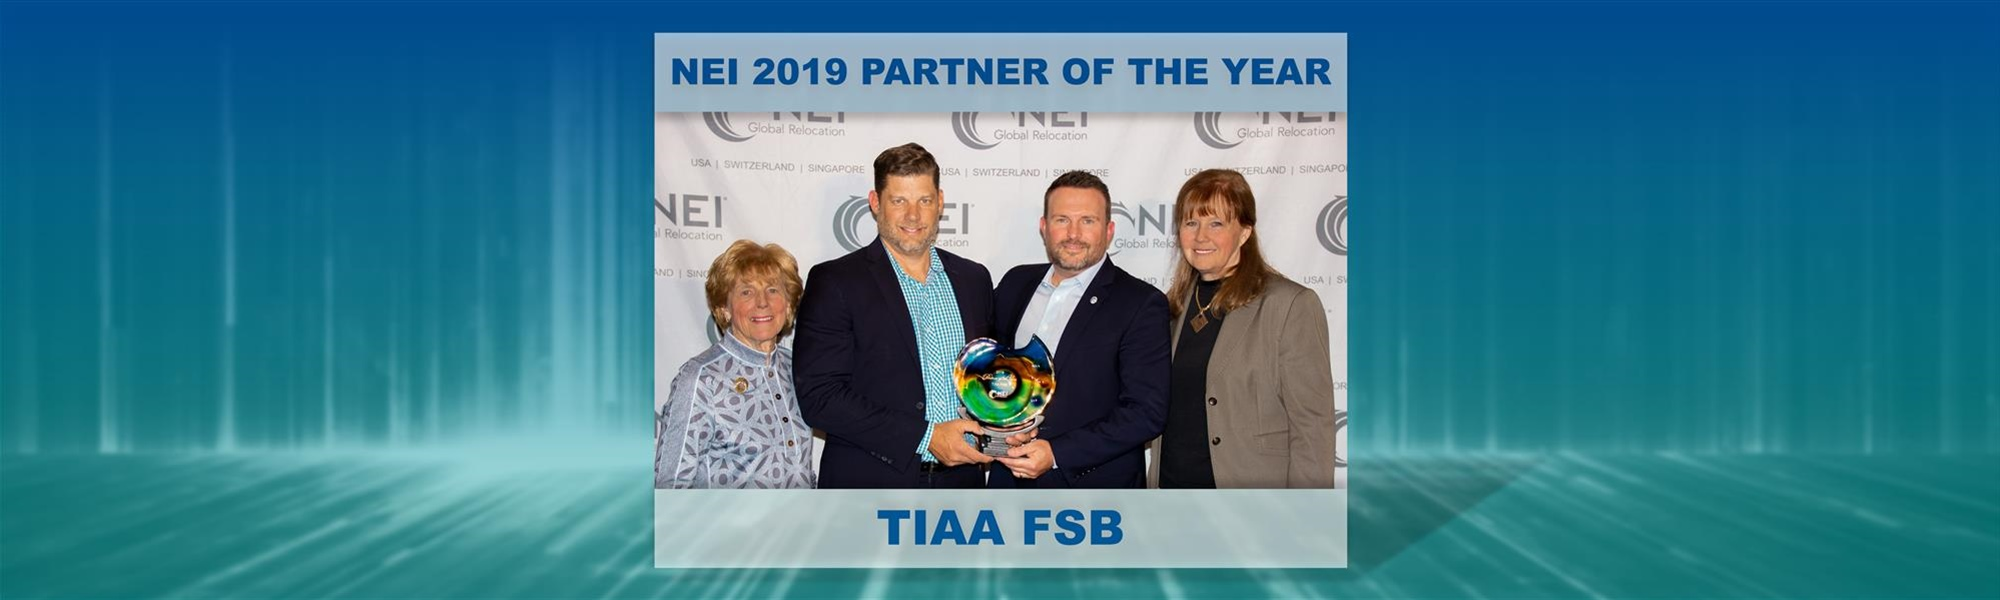 NEI Names TIAA FSB 2019 Partner of the Year